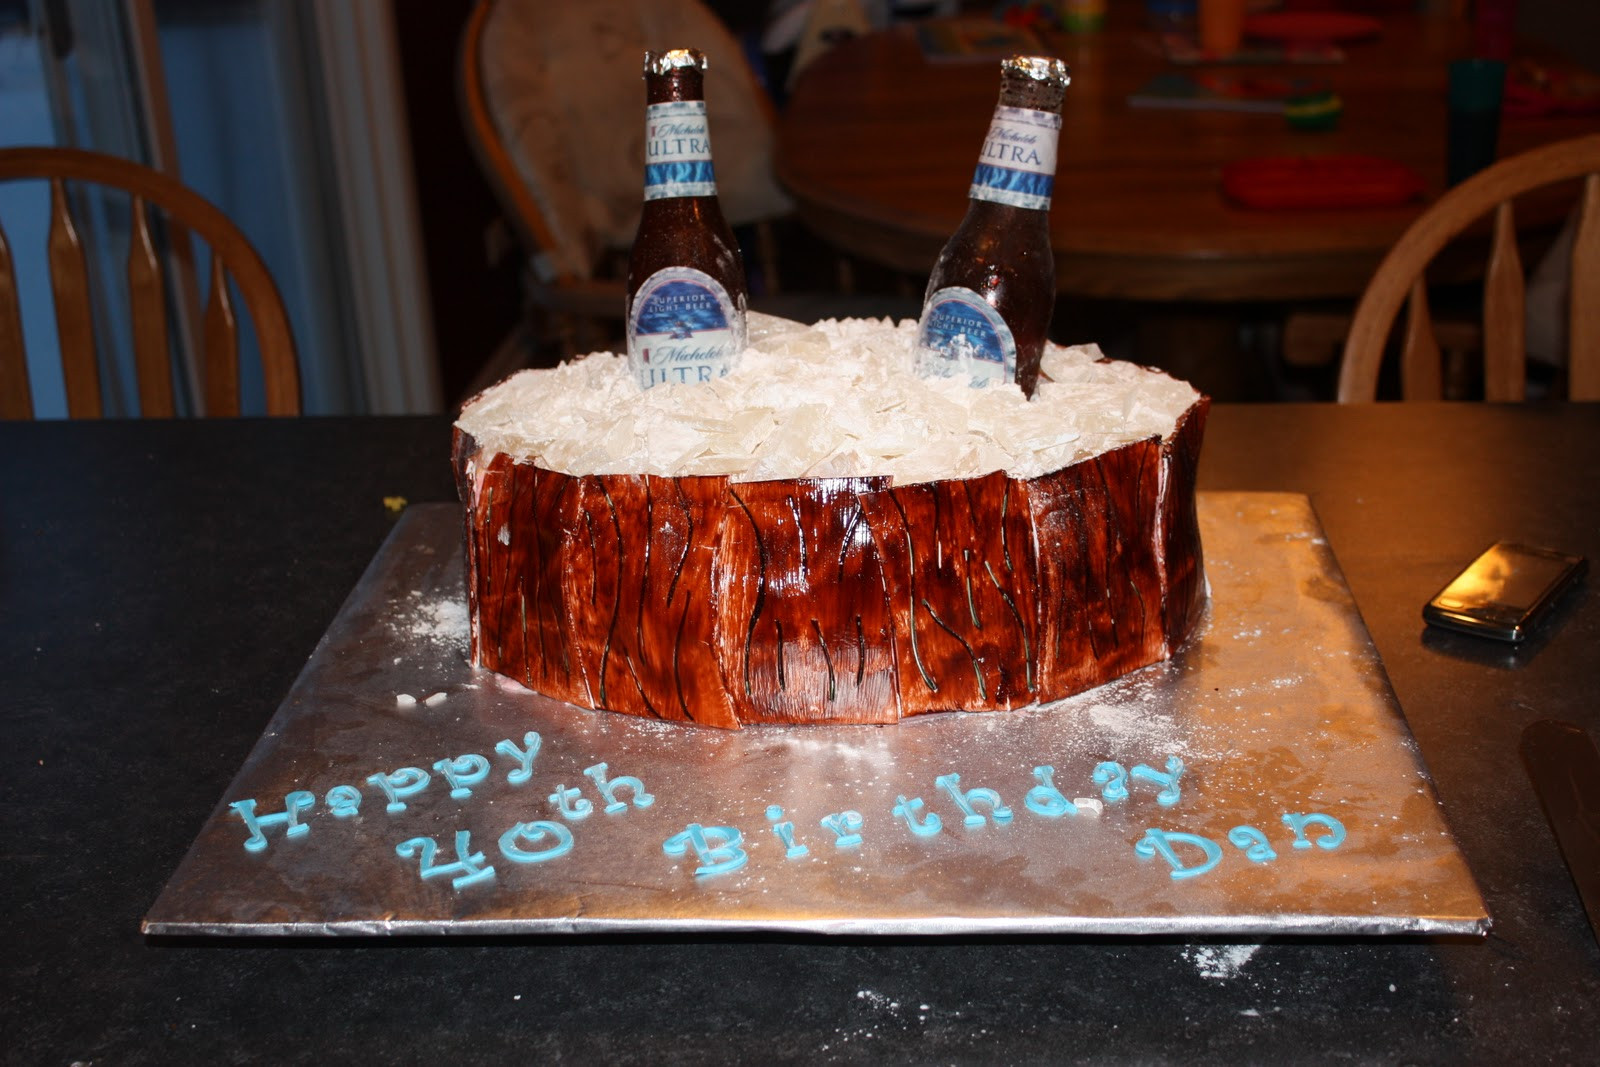 Best ideas about Happy Birthday Beer Cake . Save or Pin My Ava Cakes Beer Bucket Cake Happy 40th Birthday Dan Now.